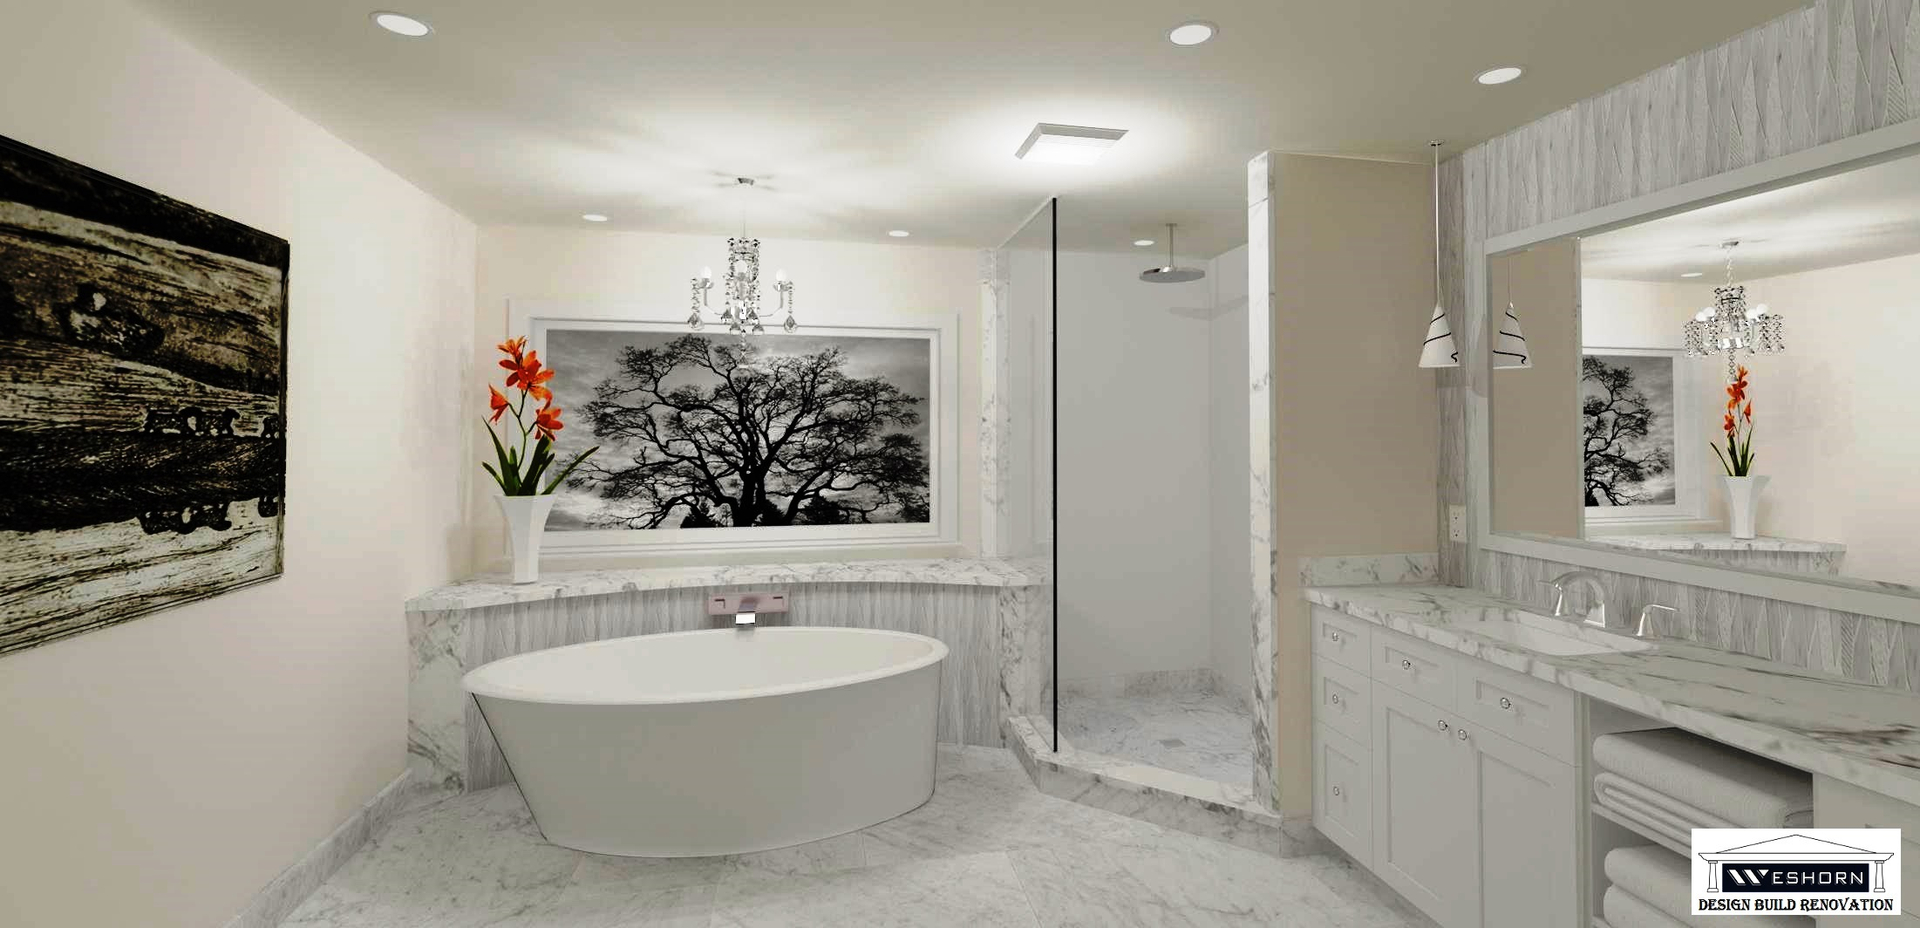 Kitchen Remodel Cabinets To Fit Your Budget Bathroom Remodeling - Bathroom remodel design services